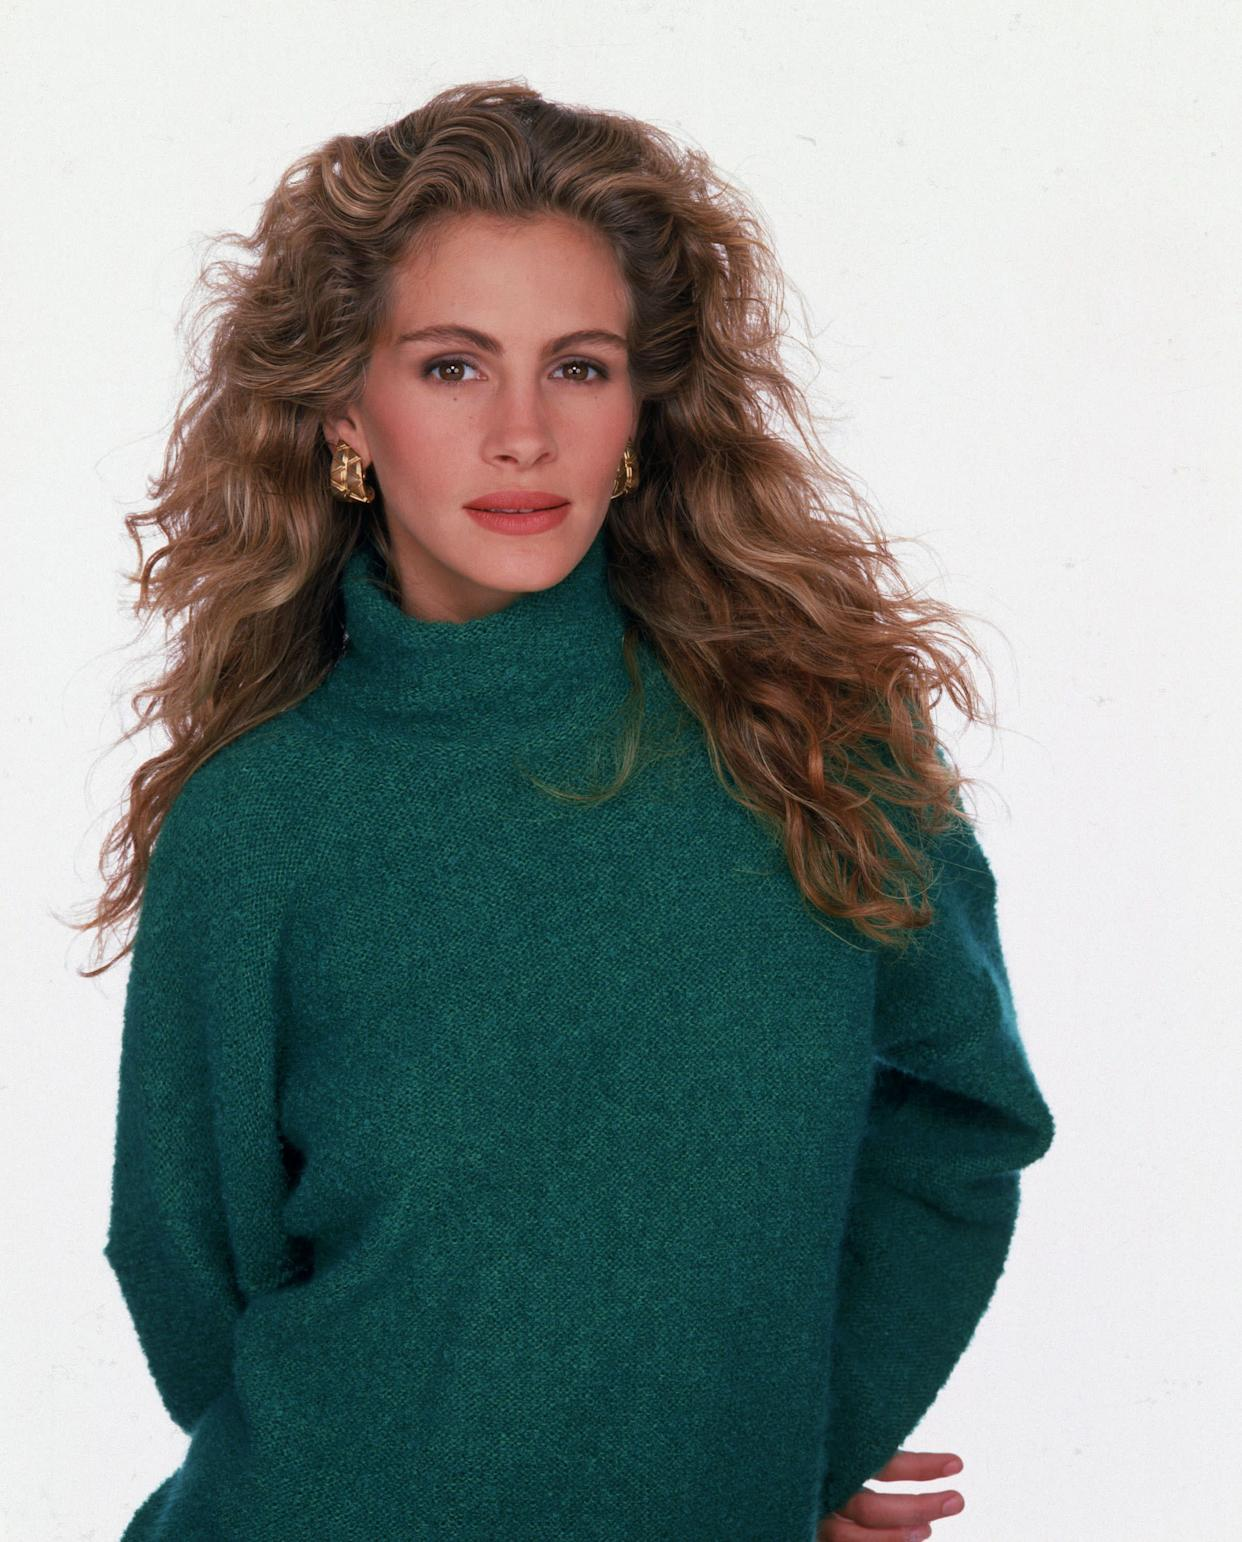 The actress poses in a green turtleneck for a studio portrait session in 1989.